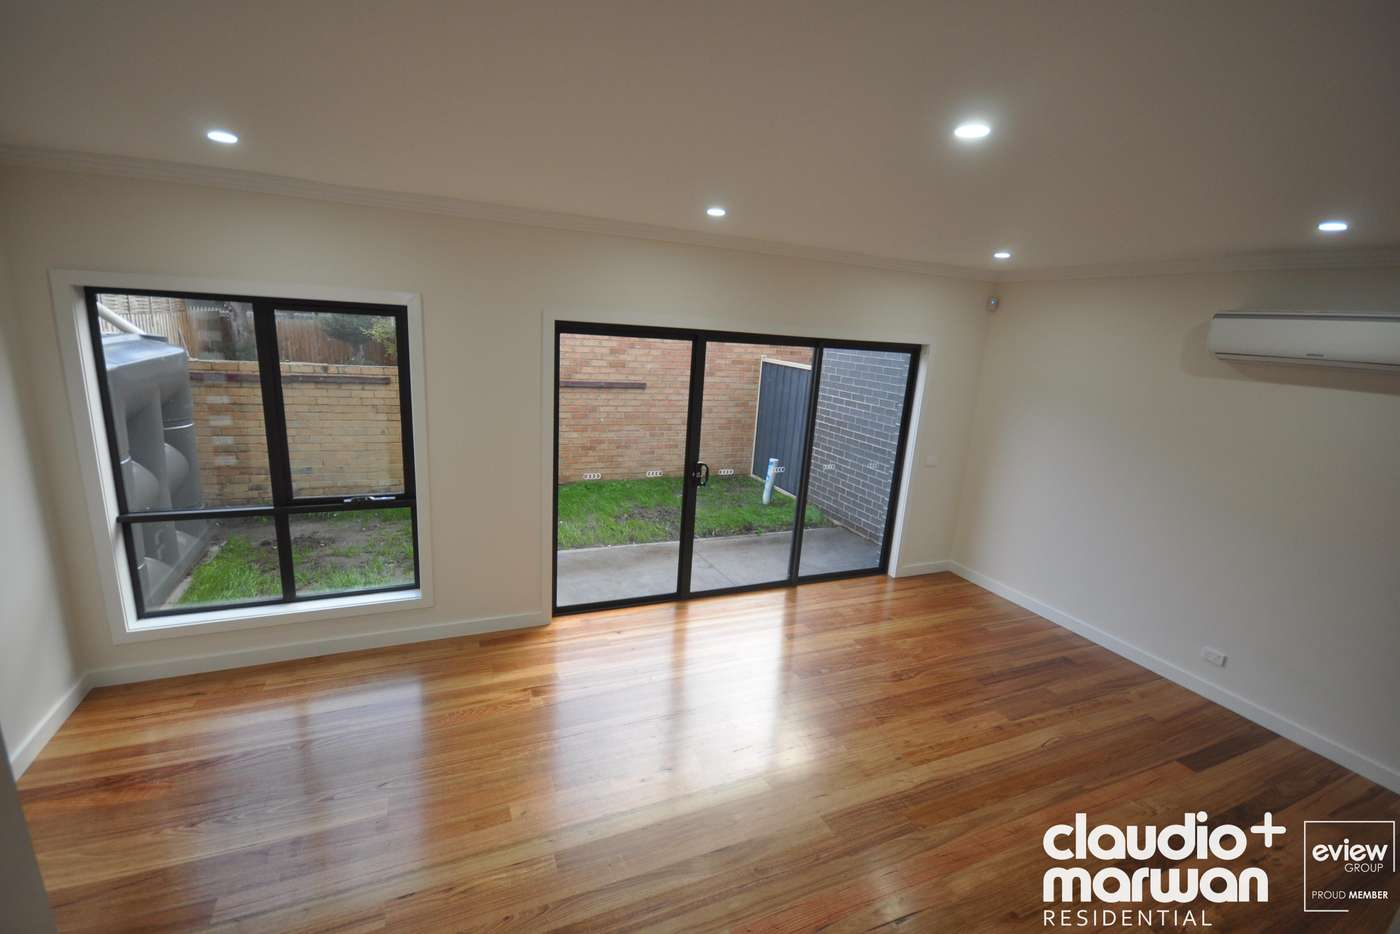 Seventh view of Homely townhouse listing, 2/4 Illawarra Street, Glenroy VIC 3046